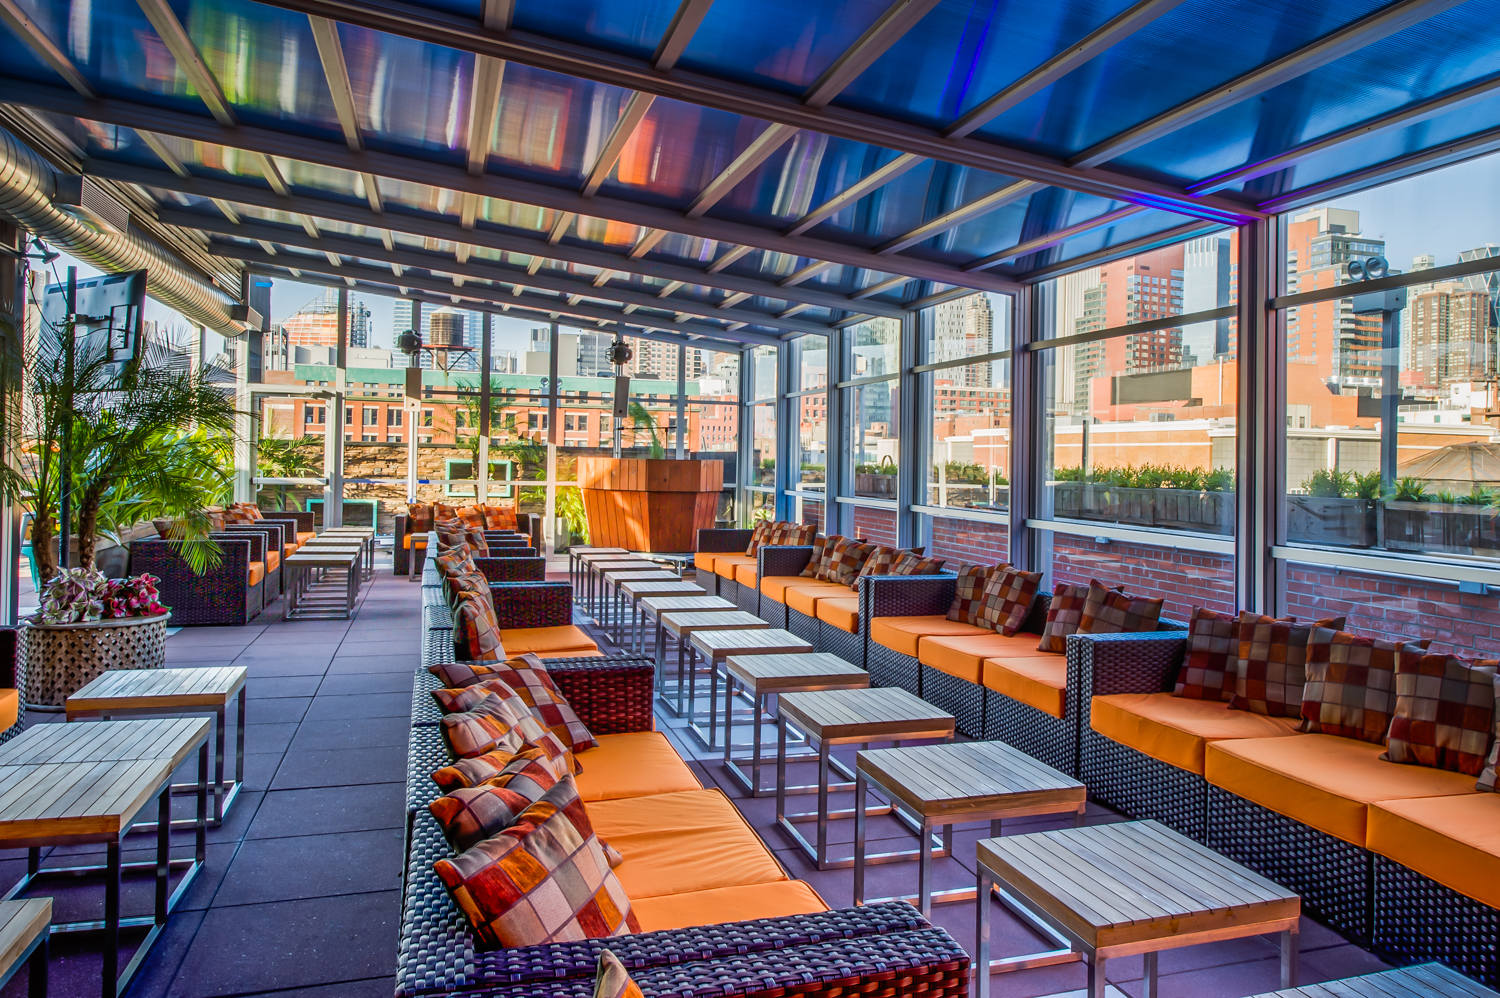 Cantina Rooftop. (Courtesy Of Cantino Rooftop)